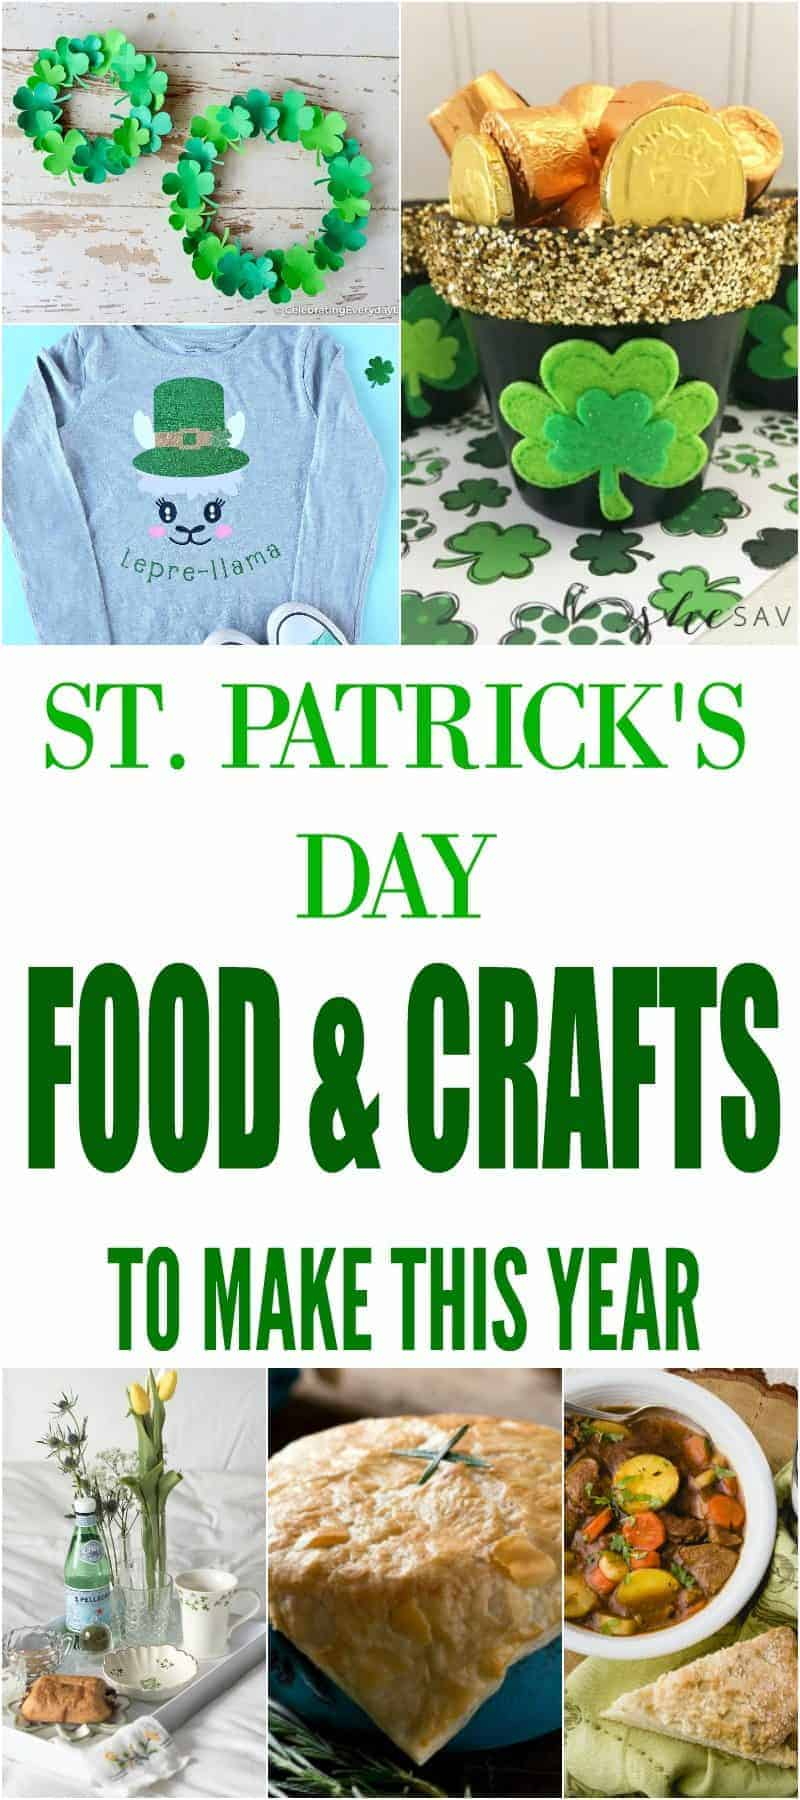 Long Pinterest collage of St. Patrick's Day food recipes, craft ideas, and decorations including shamrock wreaths, Irish Stew, Cricut t-shirt, lepre-llama, tiered tray, and pot of gold craft